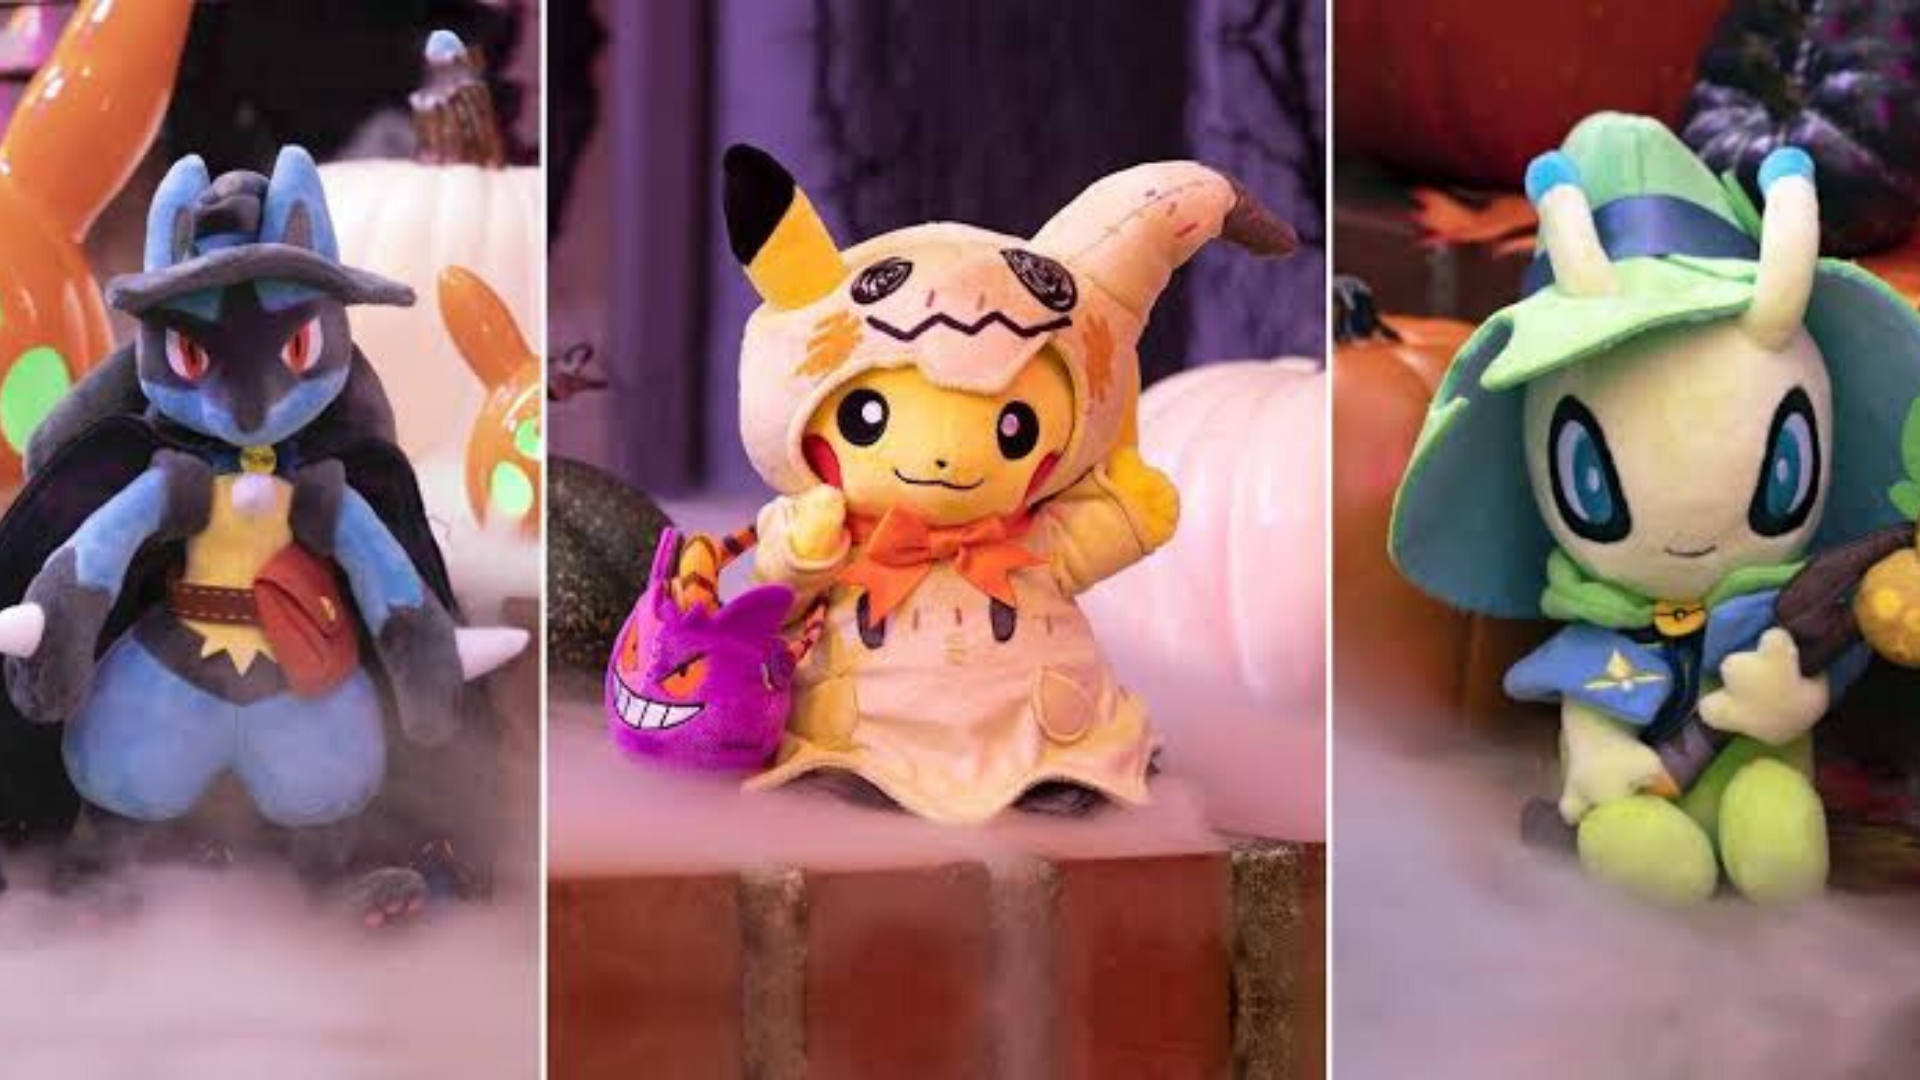 A new Pikachu plush at Pokémon Center- but it's not exclusive to the store